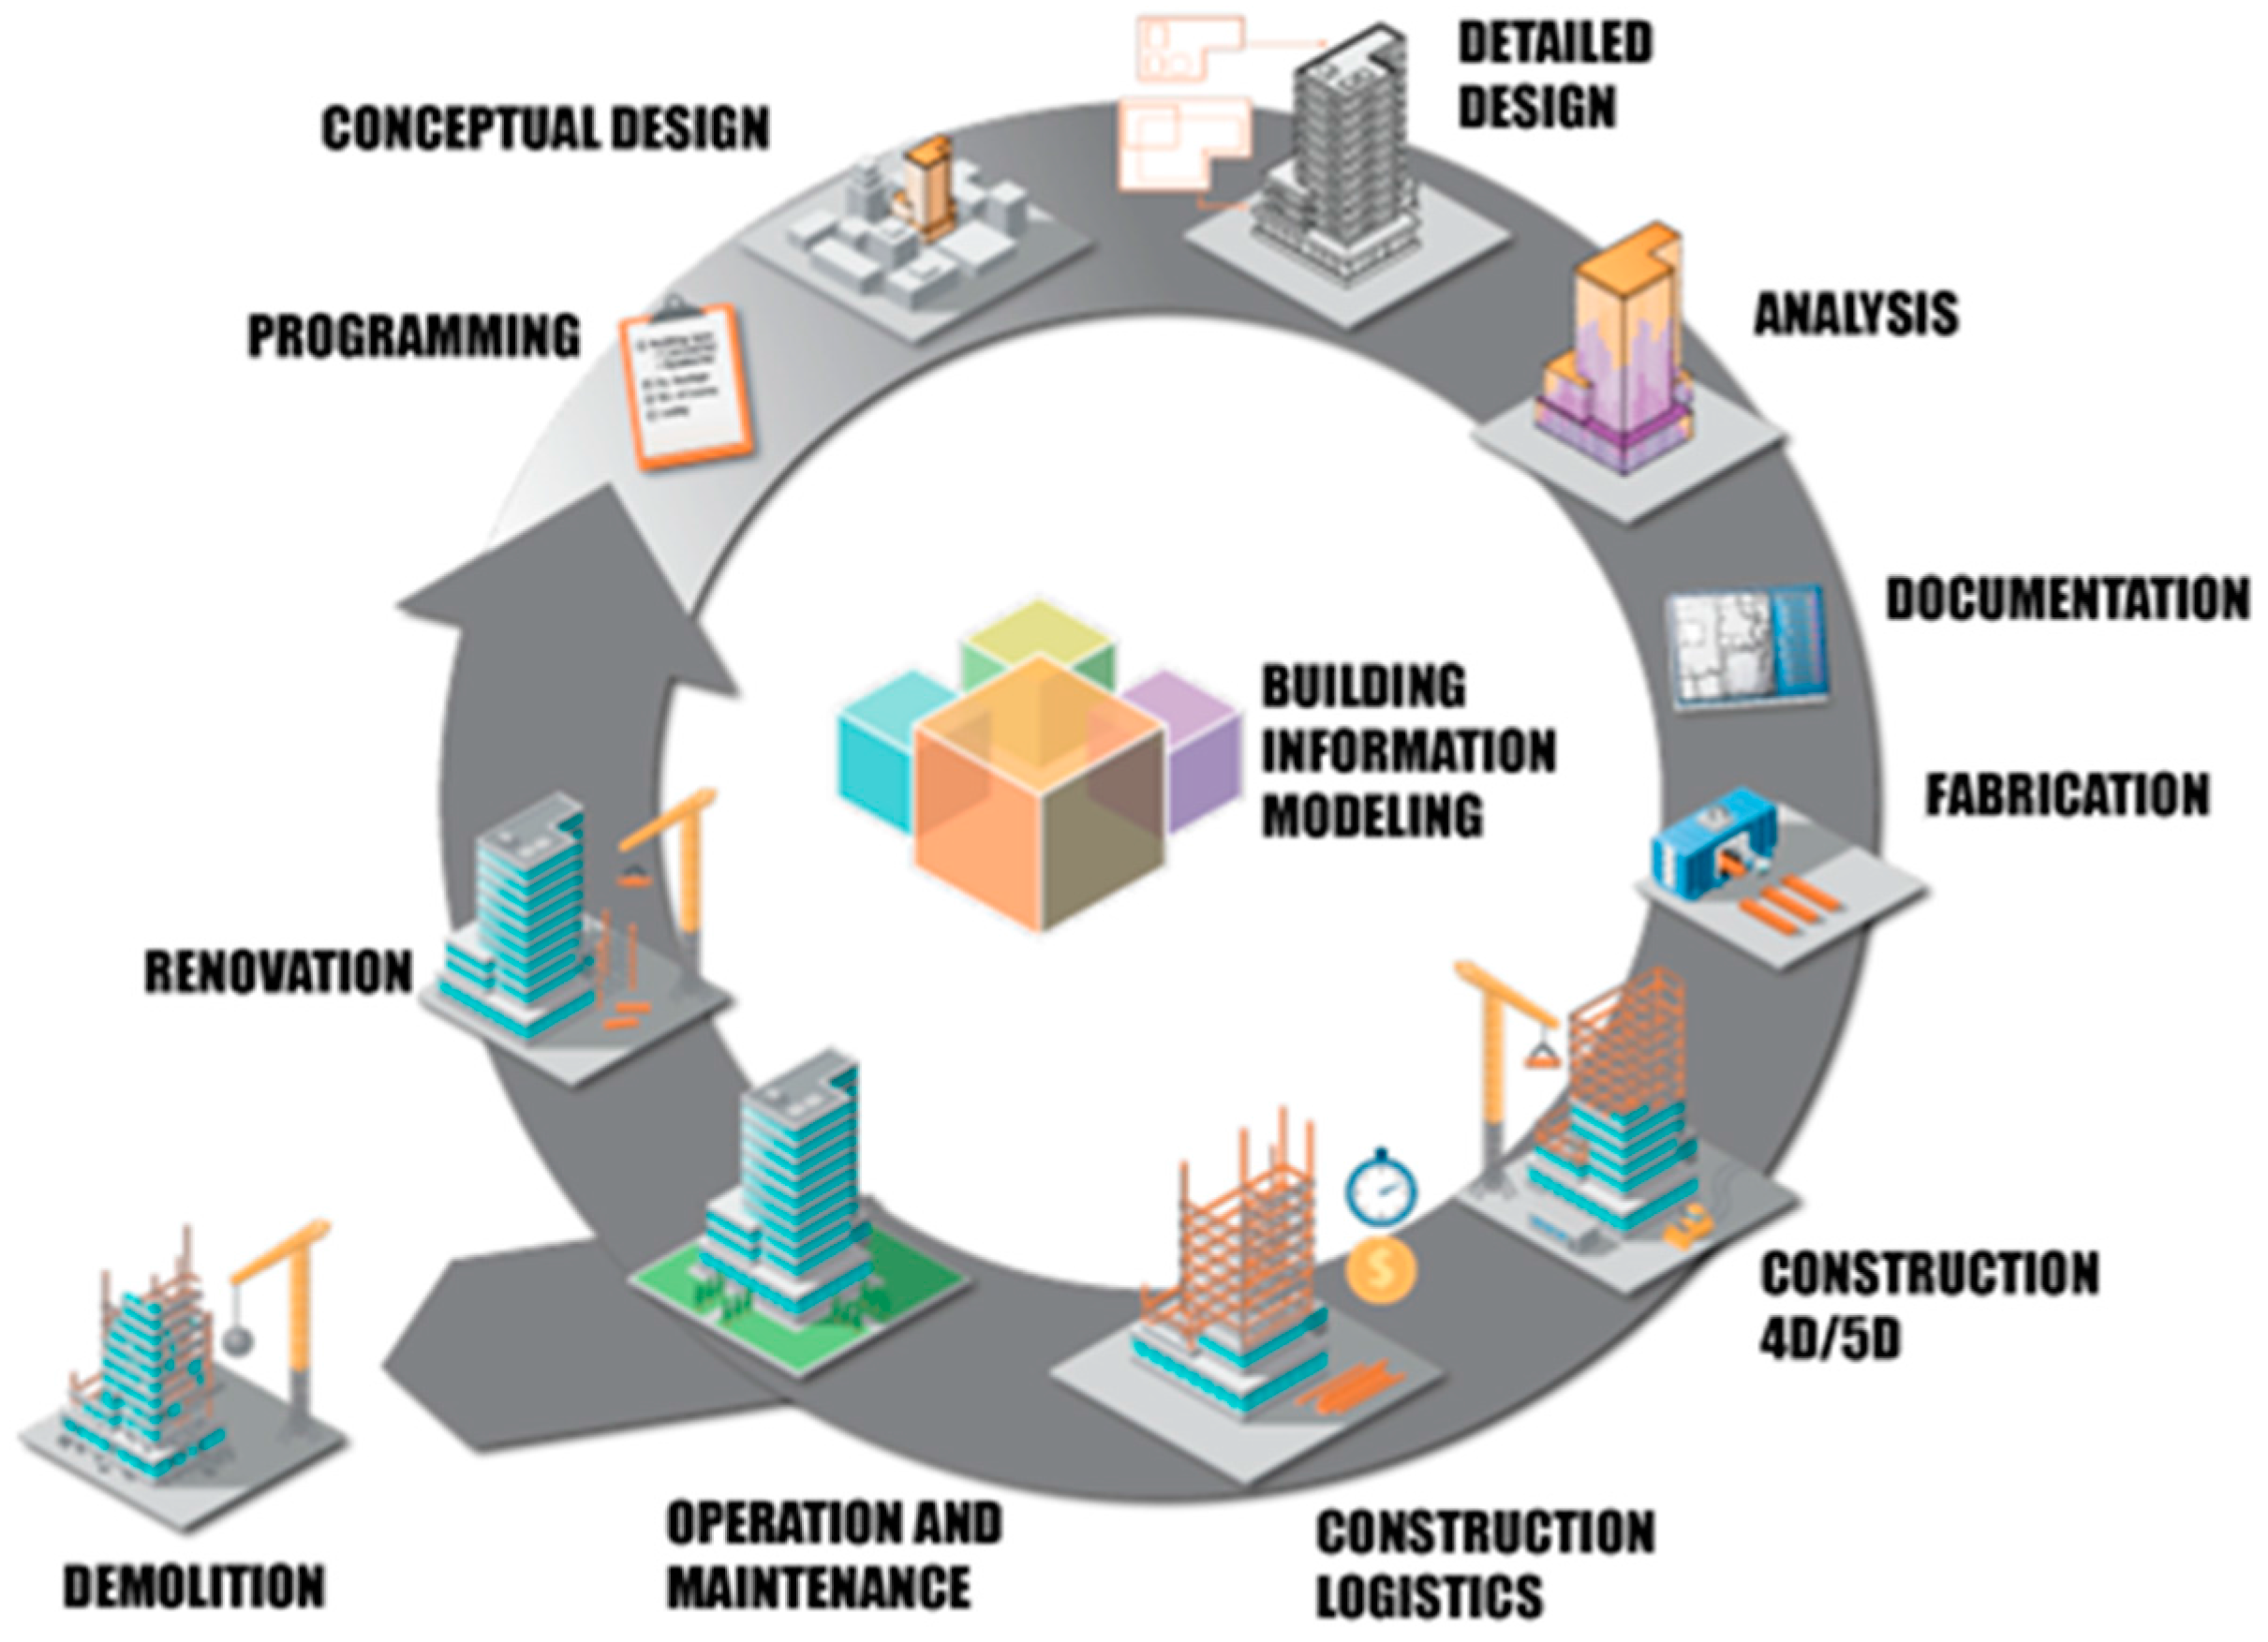 Energies Free Full Text Optimizing Energy Efficiency In Operating Built Environment Assets Through Building Information Modeling A Case Study Html